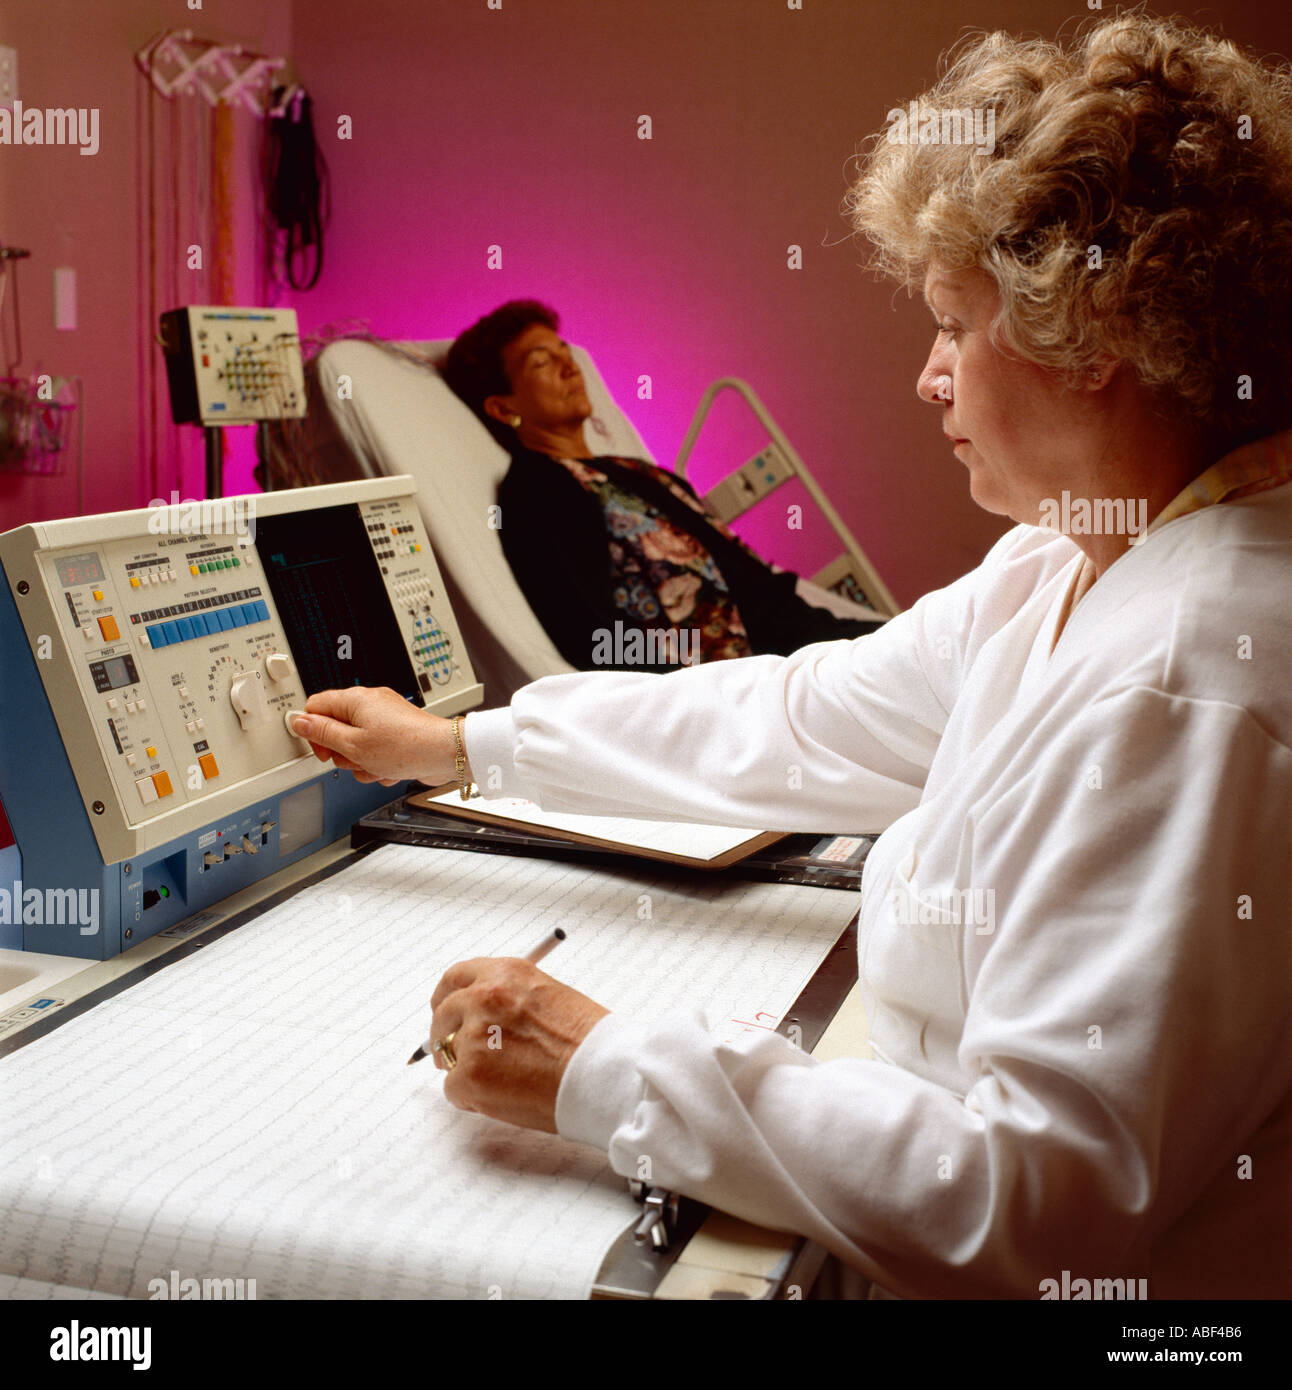 Sleep disorder research; A researcher monitors testing equipment while observing a woman during research into sleep disorders. - Stock Image